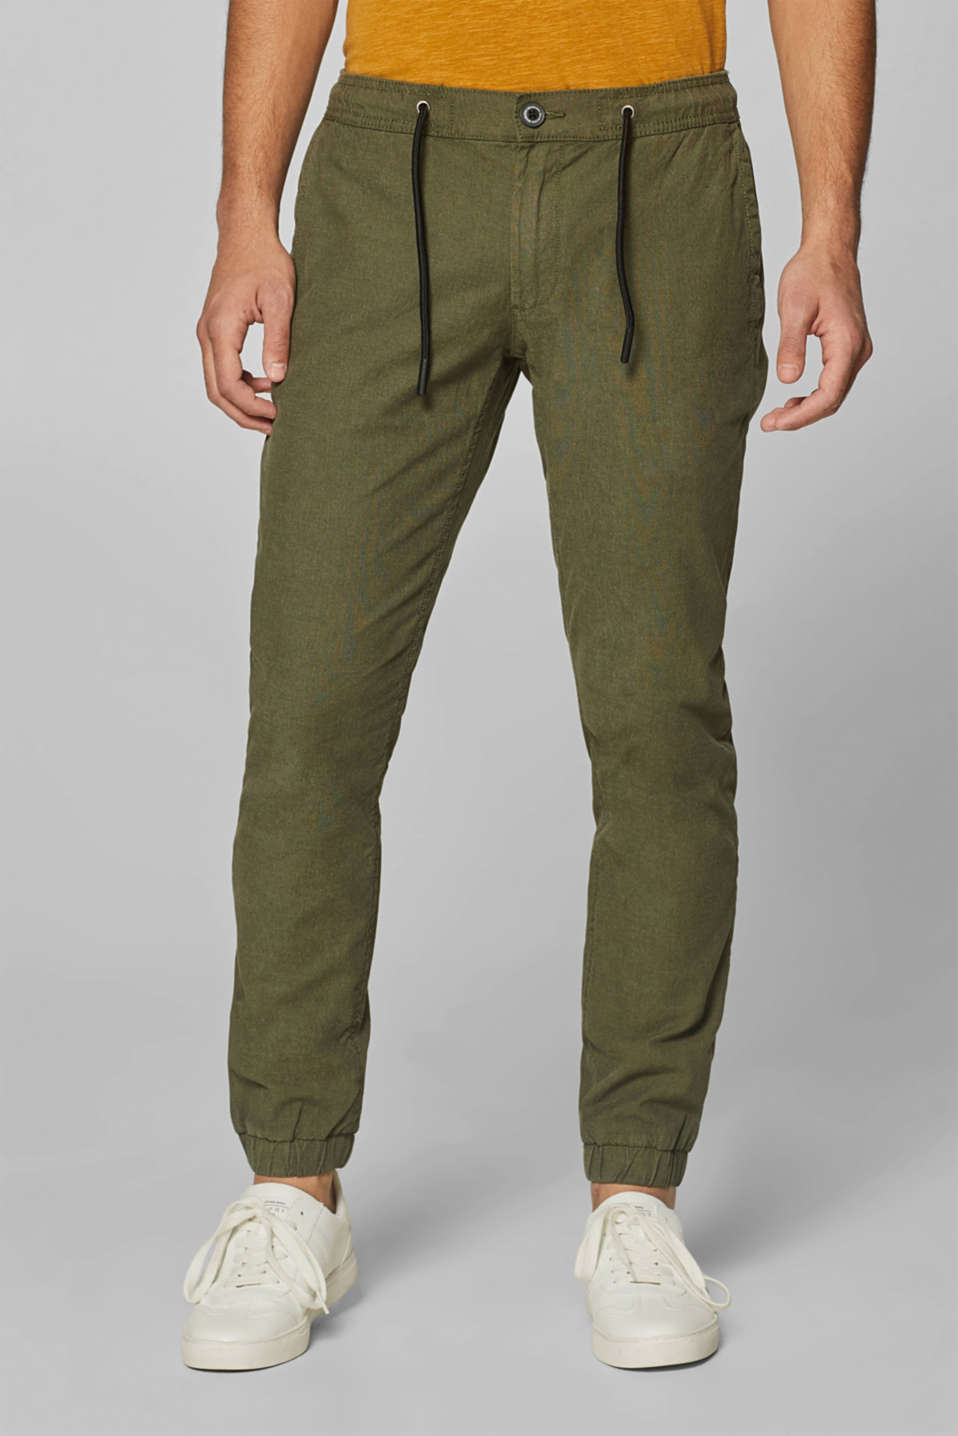 edc - Trousers with elasticated waistband, stretch cotton